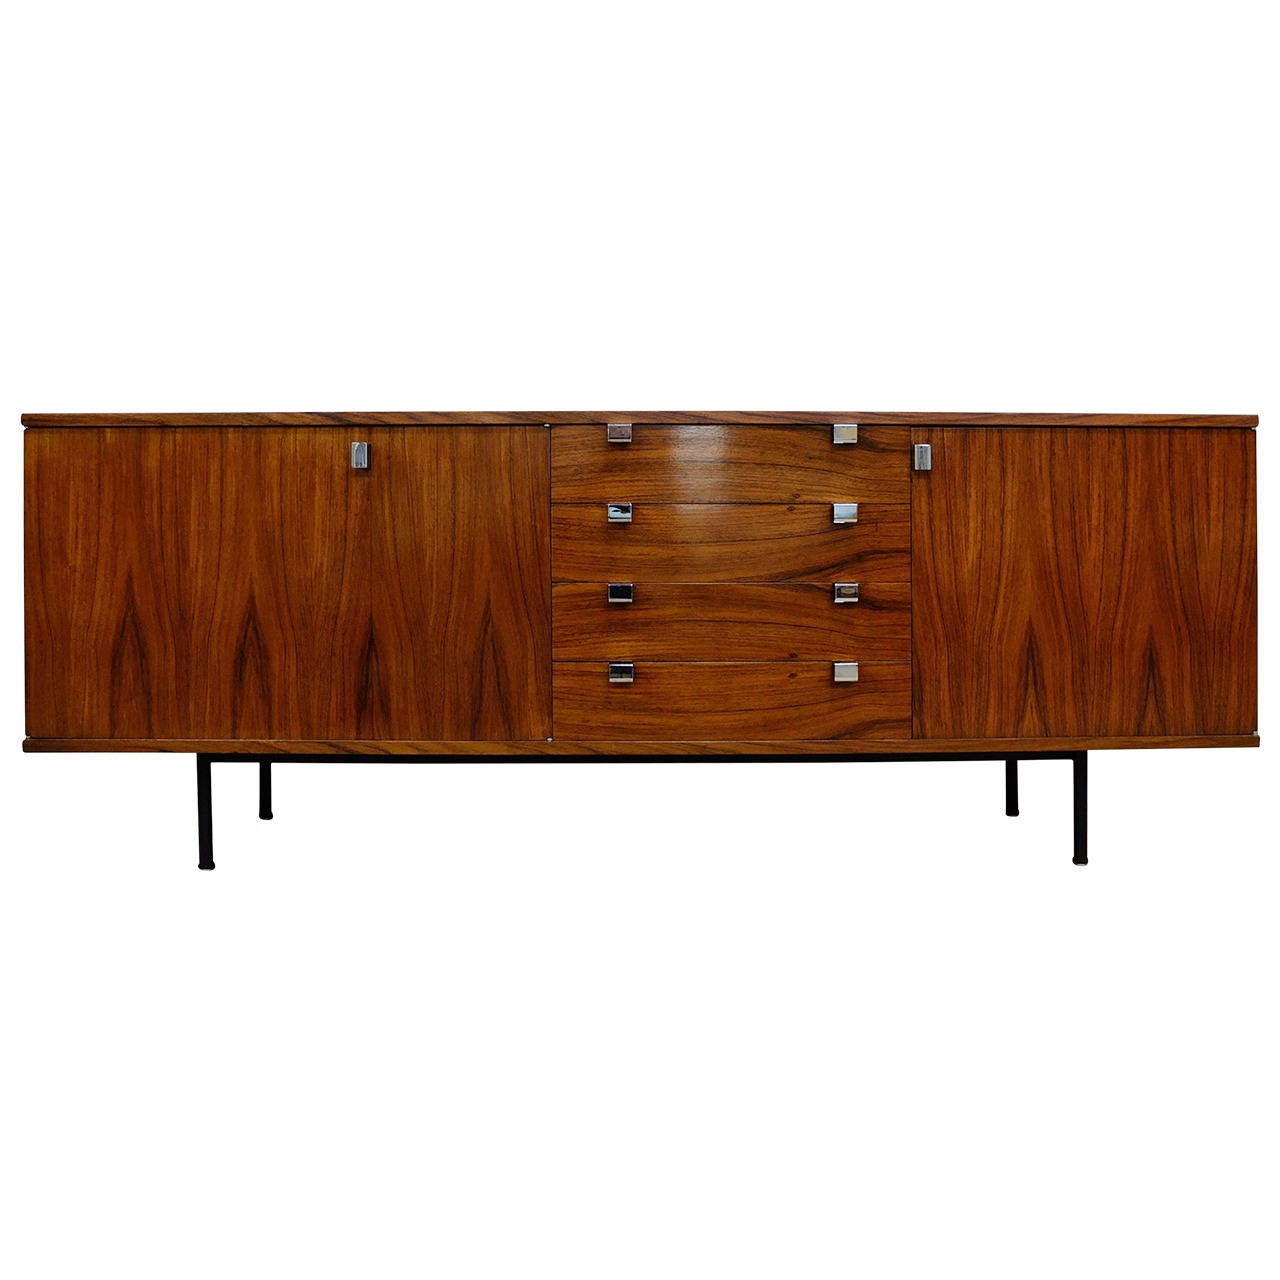 Alain richard palisander sideboard for meuble tv 1960 at for Meuble for french furniture